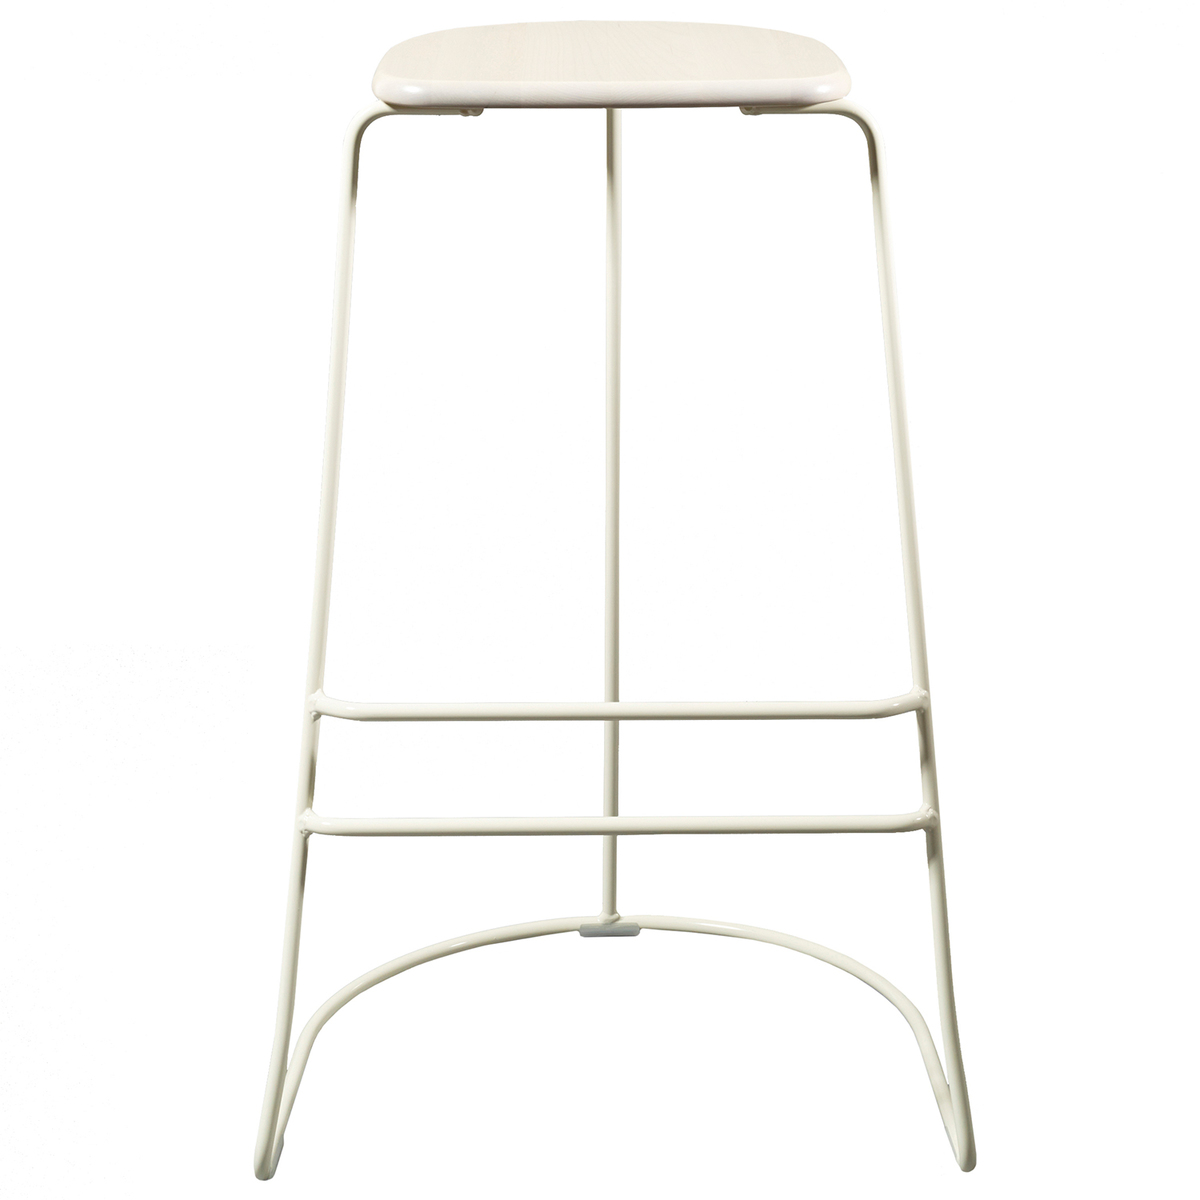 Stupendous Minus Tio Citizen Ghost Bar Stool 78 Cm White Birch Bralicious Painted Fabric Chair Ideas Braliciousco